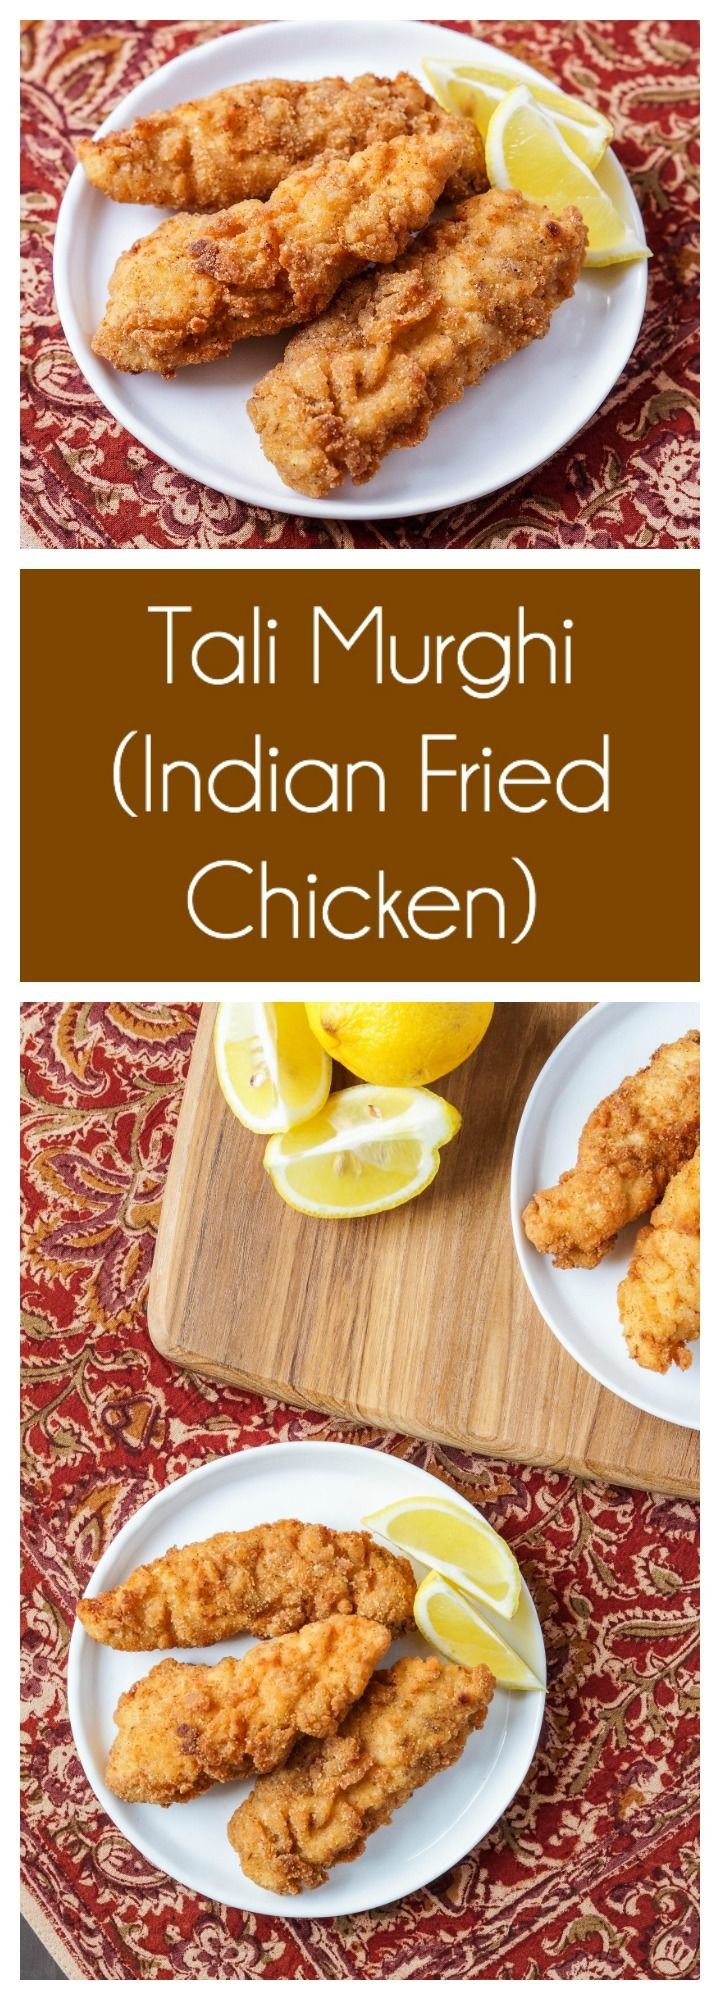 Tali Murghi (Indian Fried Chicken) from the Regional Indian Cooking book.   #ad #talimurghi #murgh #chicken #India #Indian #friedchicken #cookbook